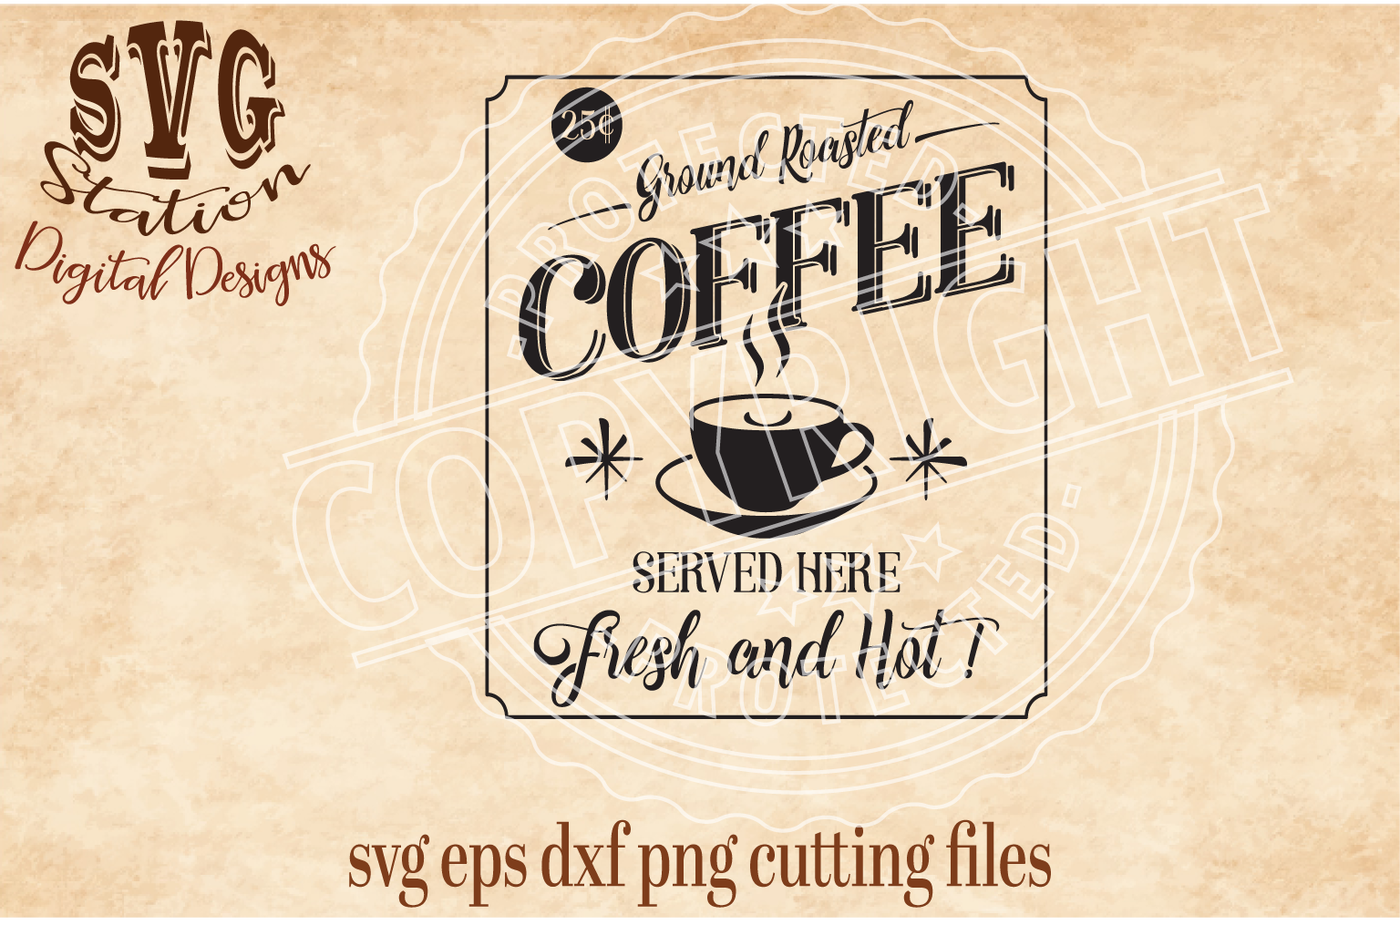 Vintage Ground Roasted Coffee Sign Svg Dxf Png Eps Cutting File Silhouette Cricut By Svg Station Thehungryjpeg Com